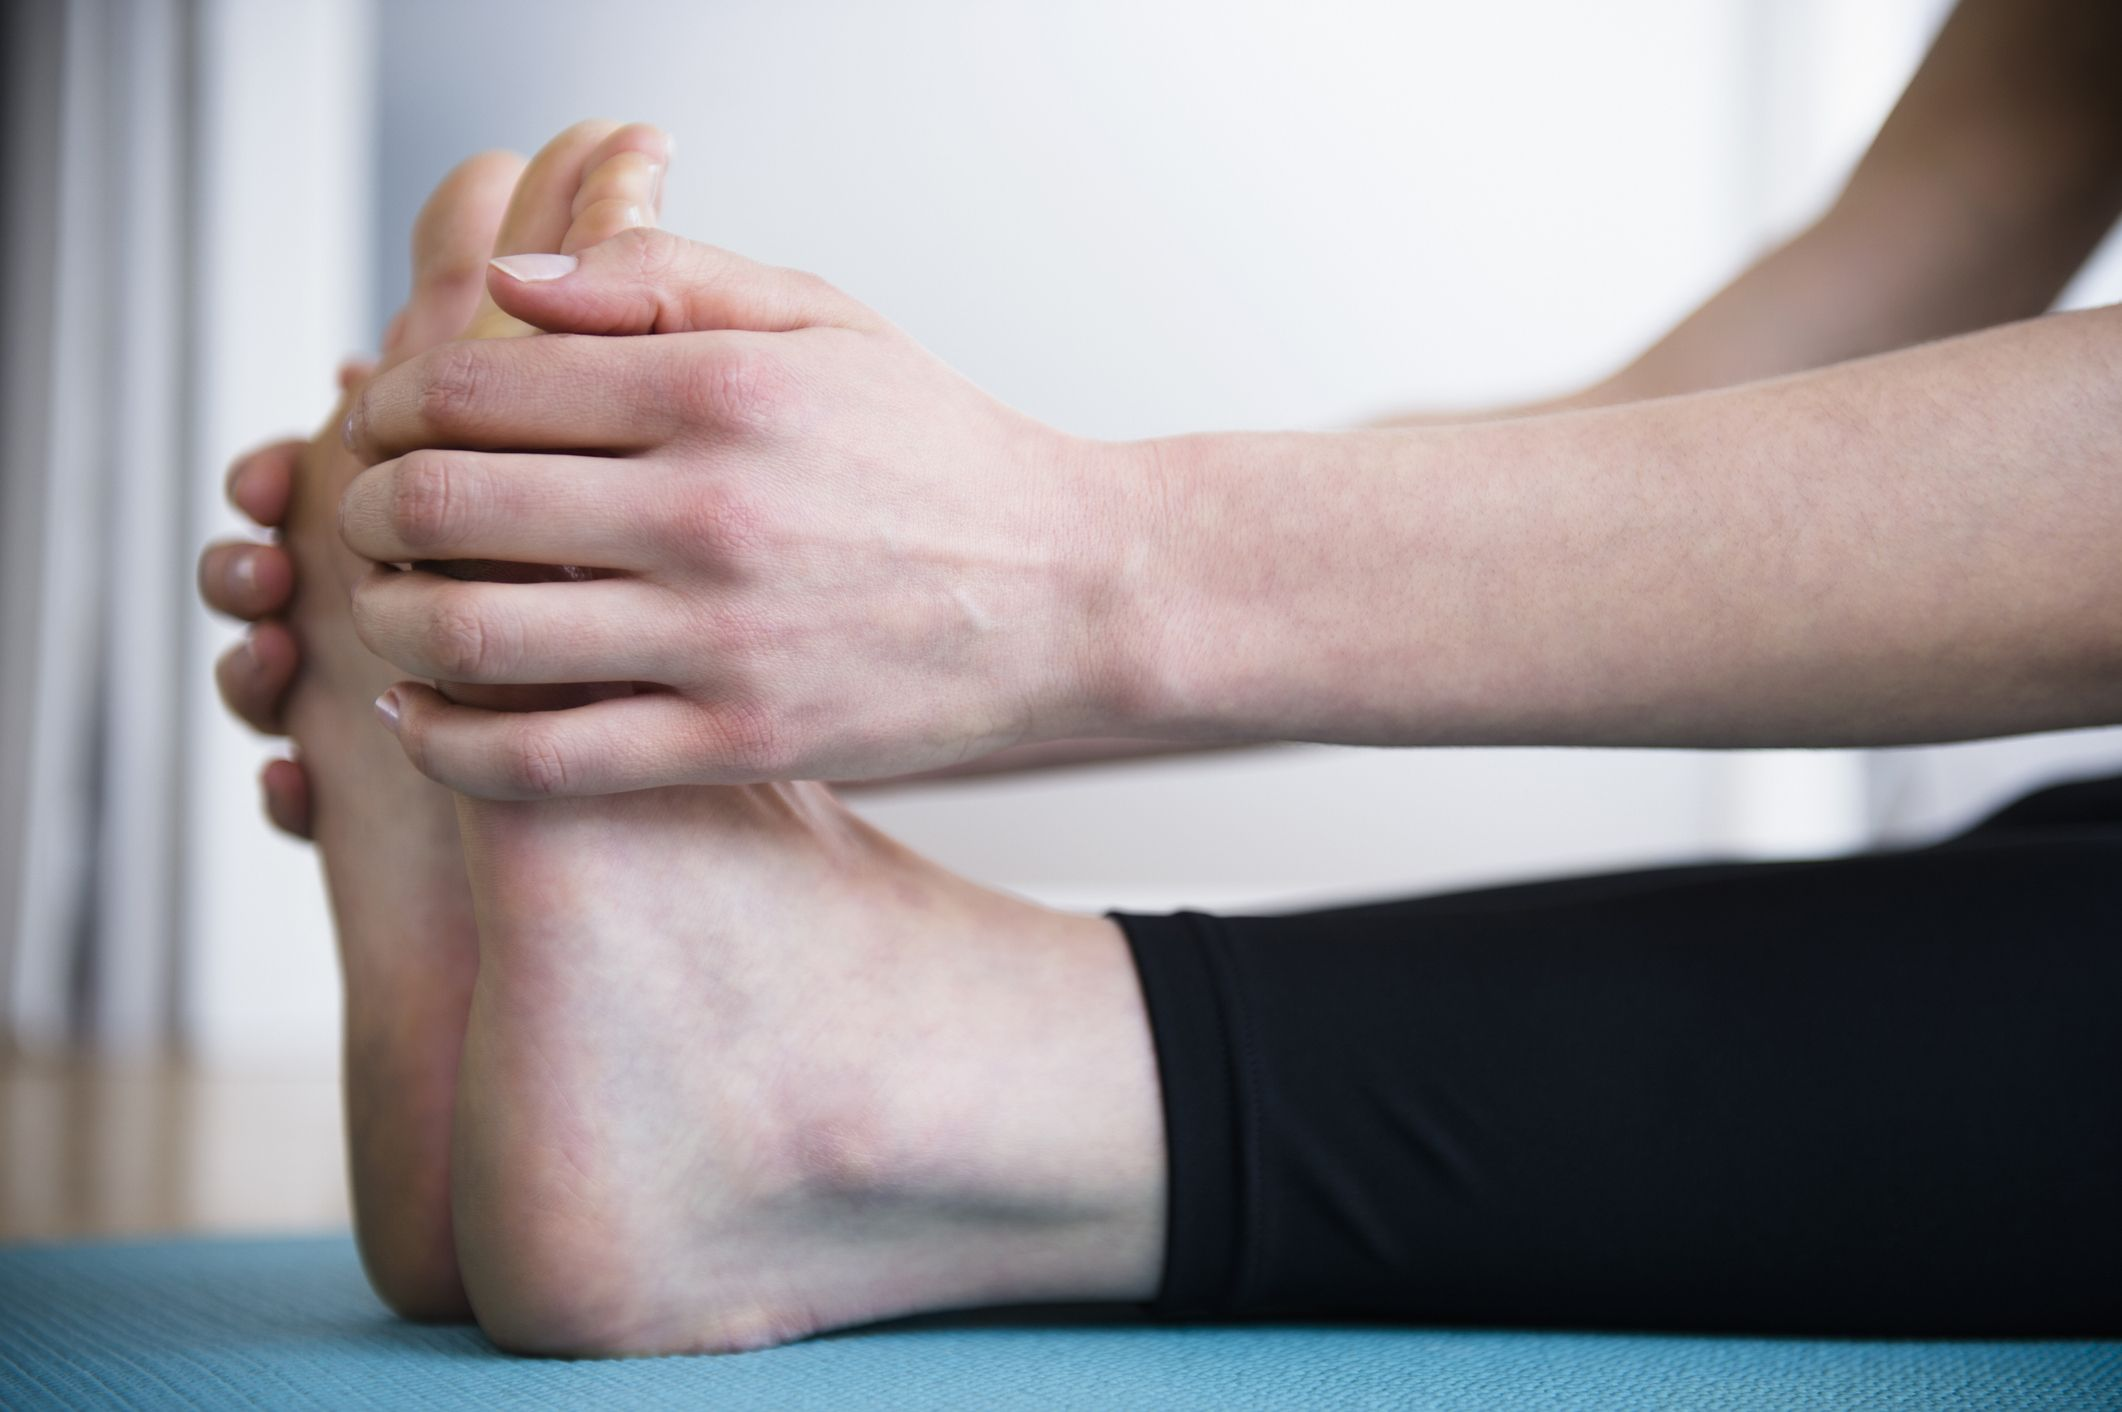 Strengthening these overlooked muscles might be key to avoiding injuries